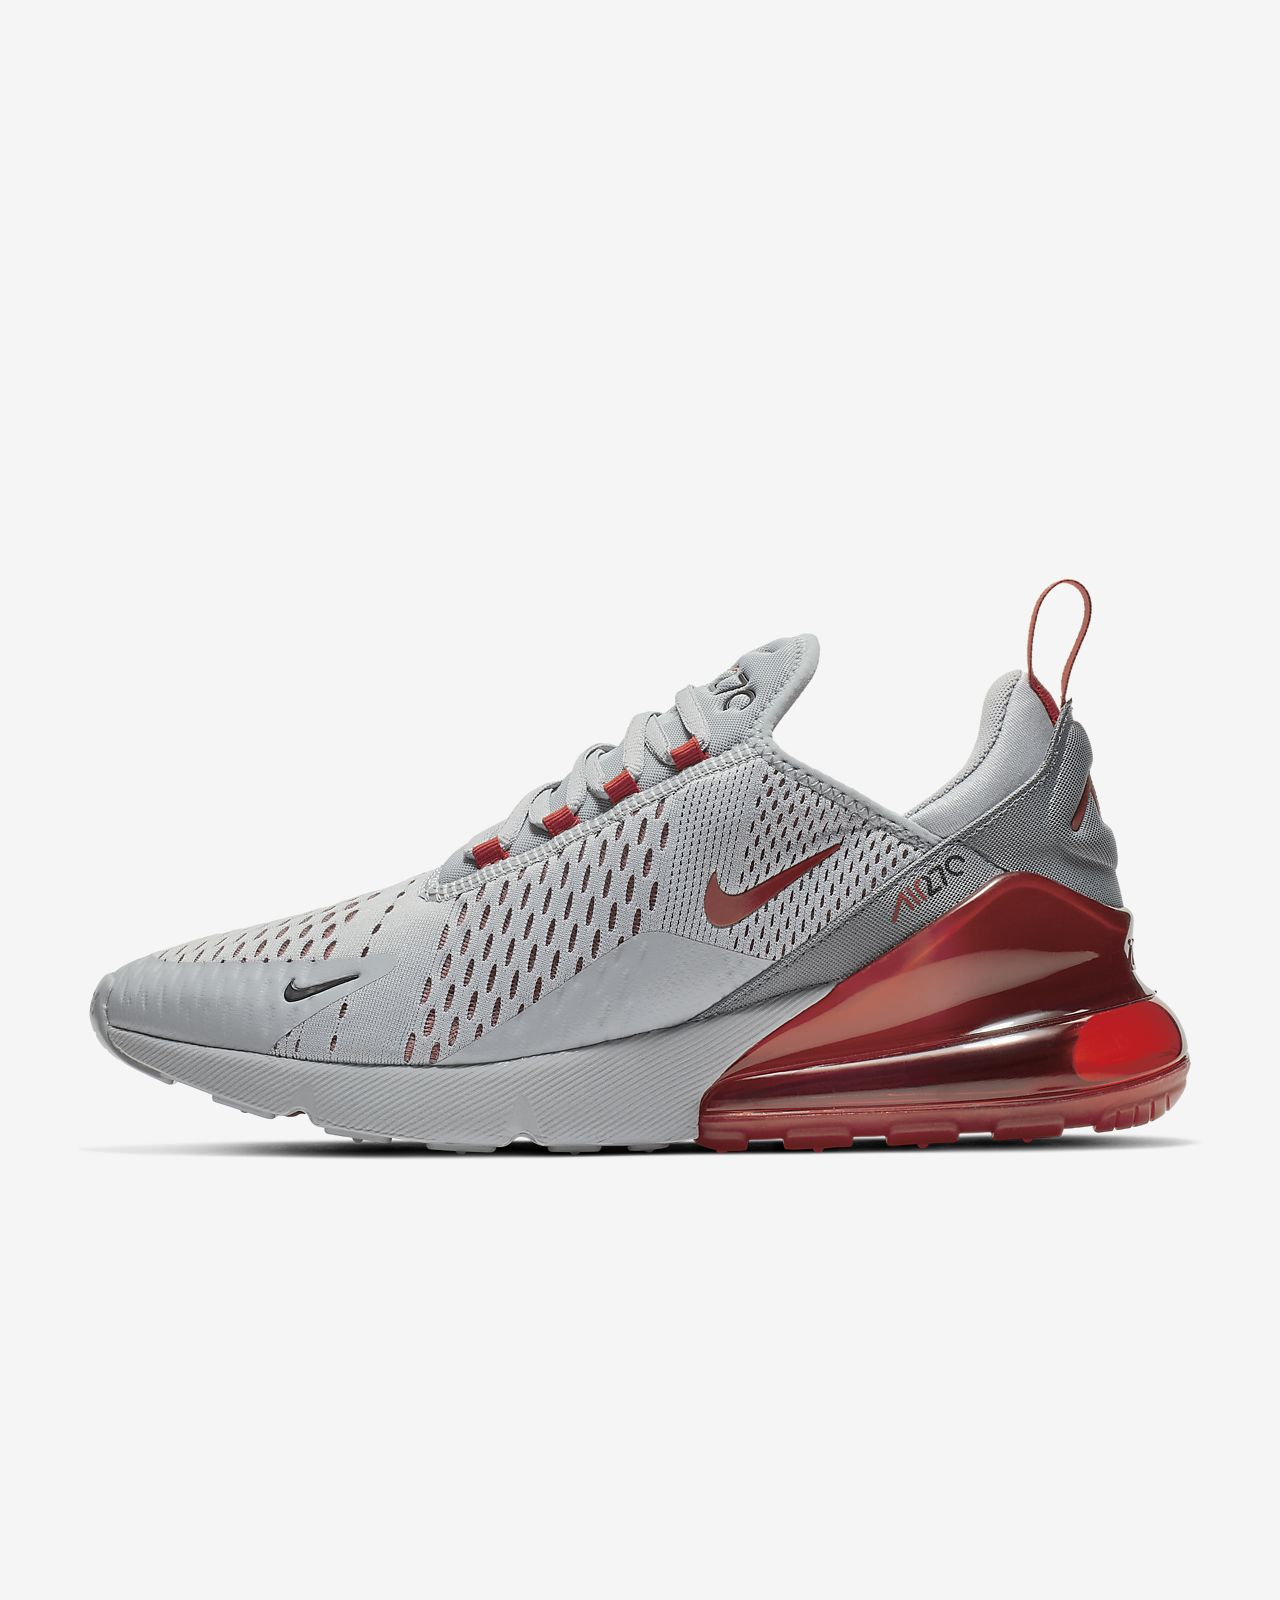 7e7445e47a39 Nike Air Max 270 Men s Shoe. Nike.com ID